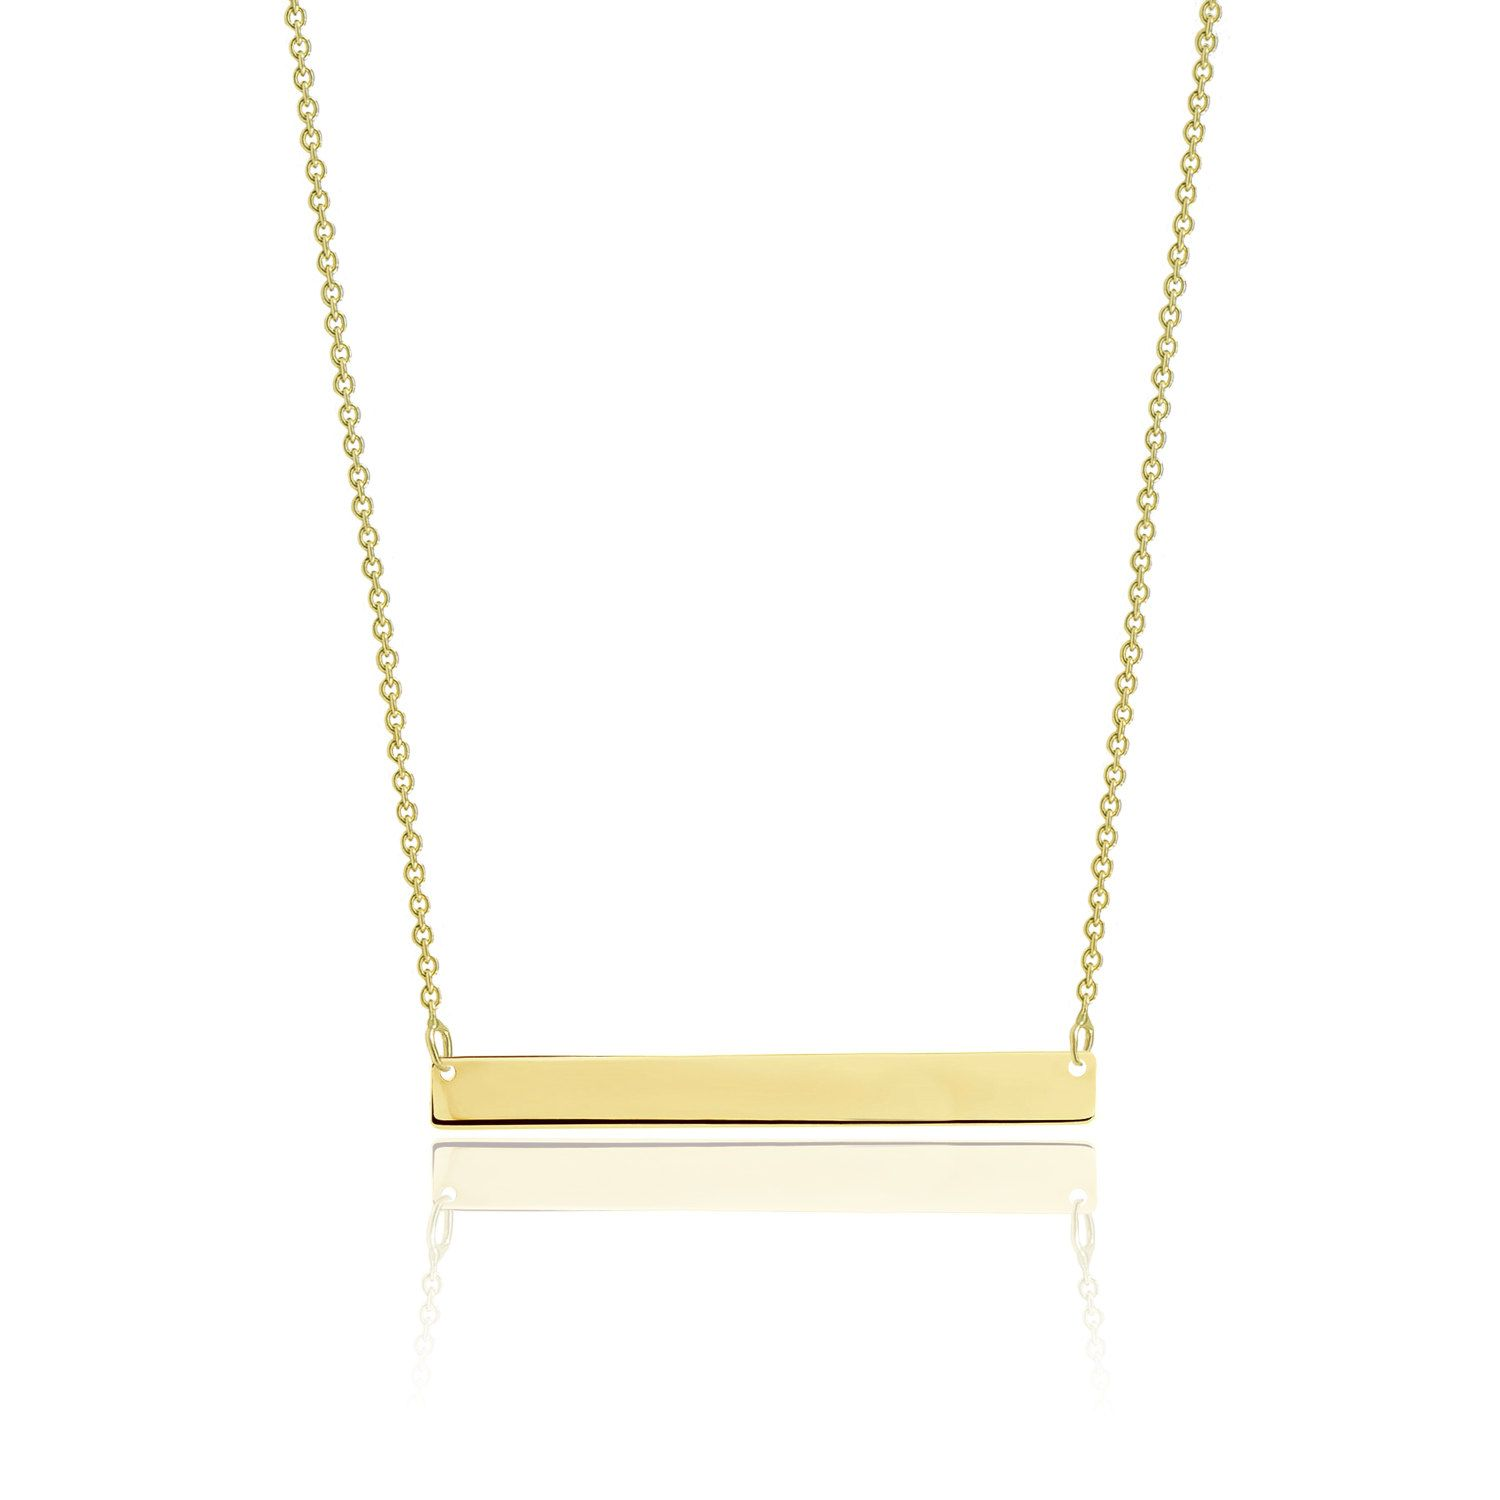 10k Solid Yellow Gold Custom Horizontal Bar Necklace Pendant Rolo Chain Description Material Ge Horizontal Bar Necklace Yellow Gold Pendants Bar Pendant